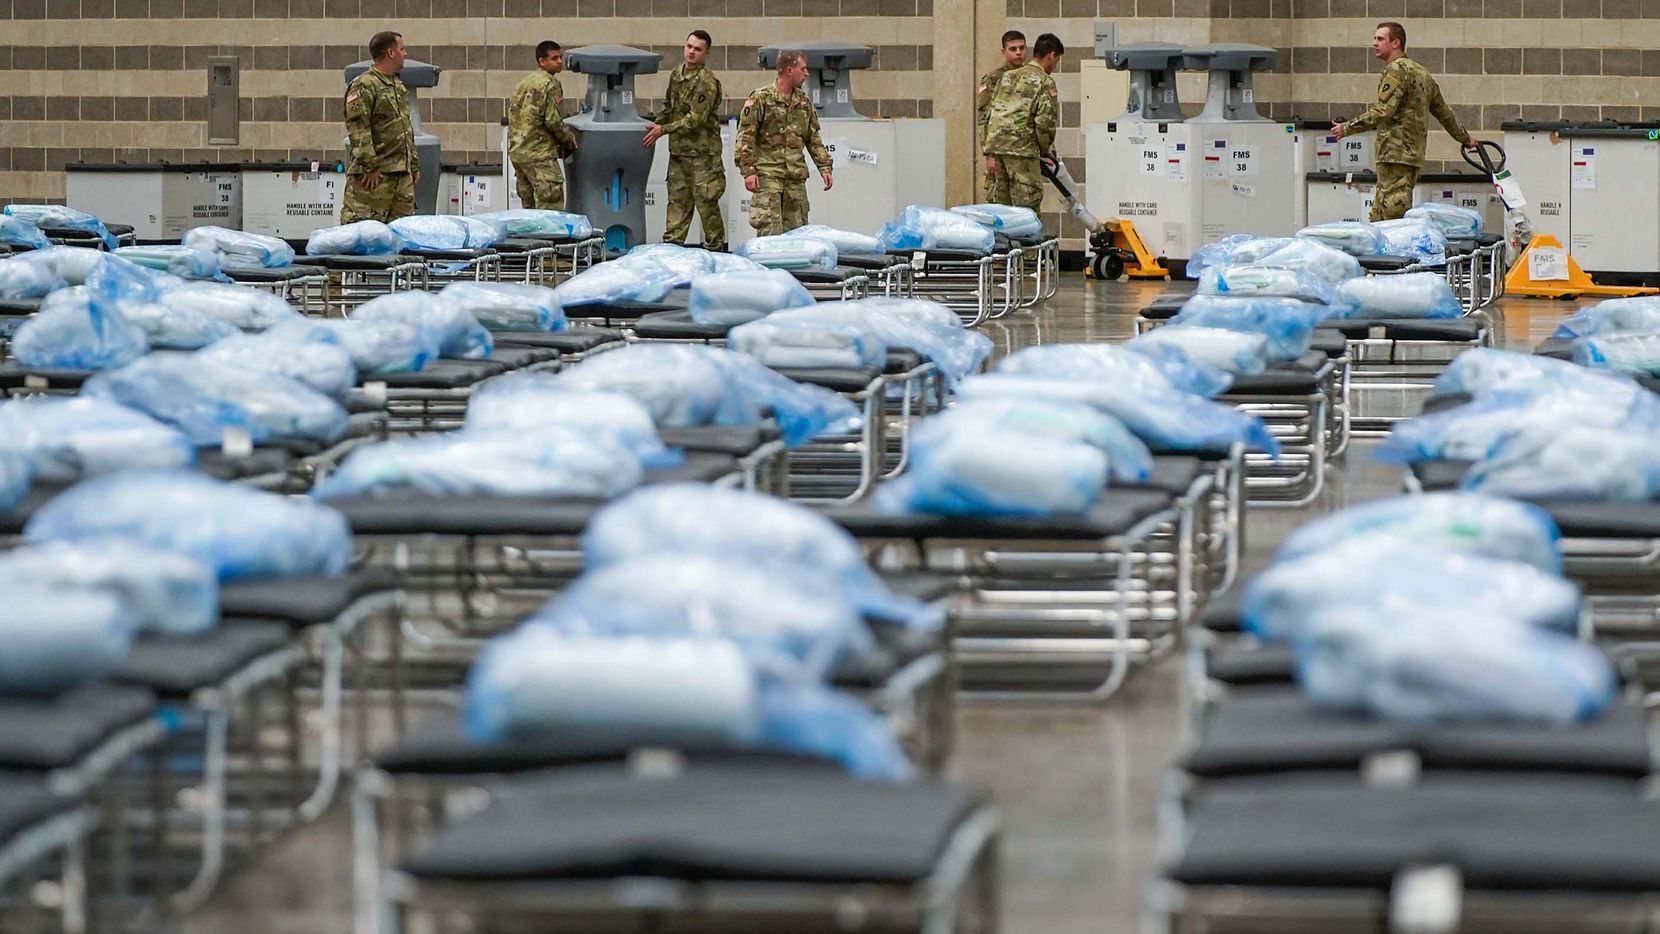 Members of the Texas Army National Guard unpack crates of supplies as they set up a field hospital in response to the new coronavirus pandemic at the Kay Bailey Hutchison Convention Center on Tuesday, March 31, 2020, in Dallas.